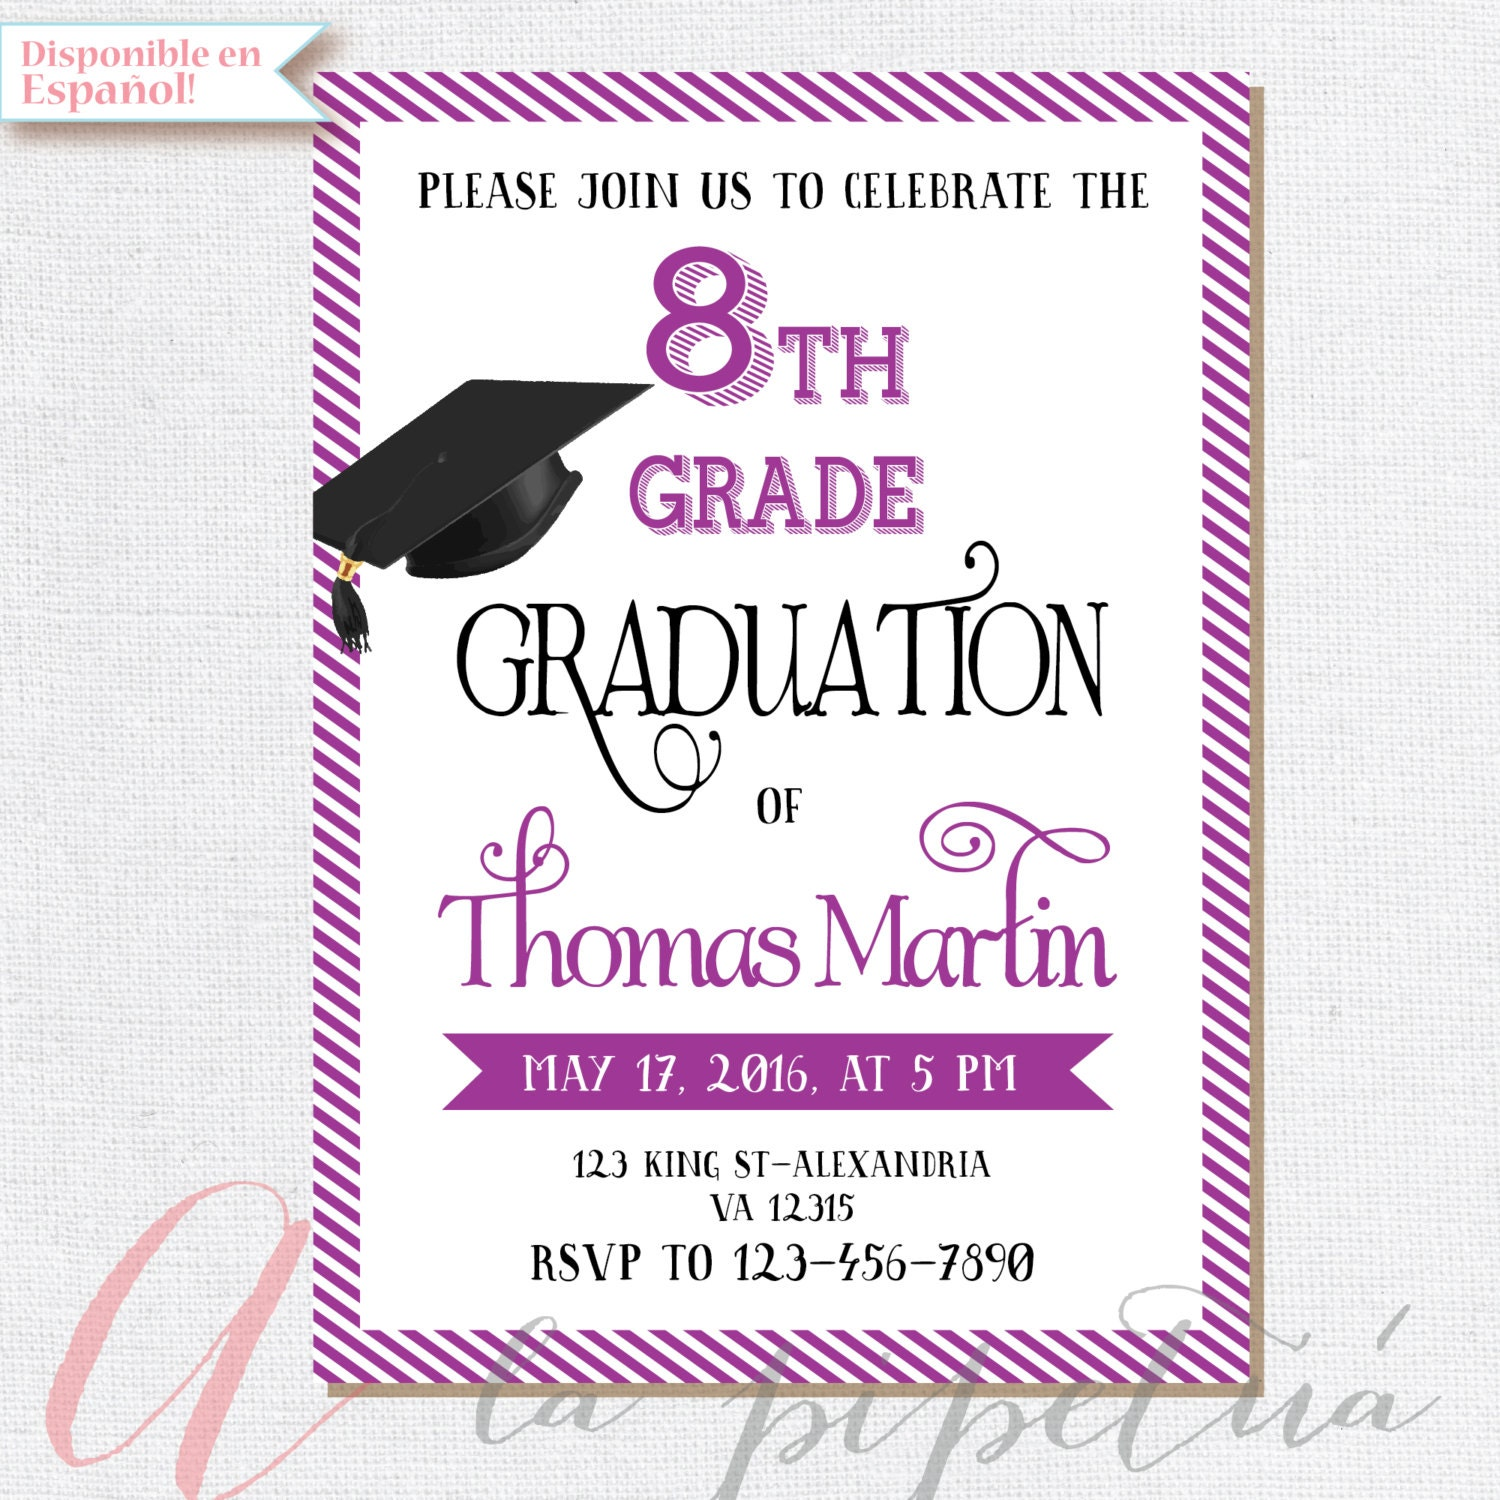 th grade graduation invite printable graduation invitation, invitation samples